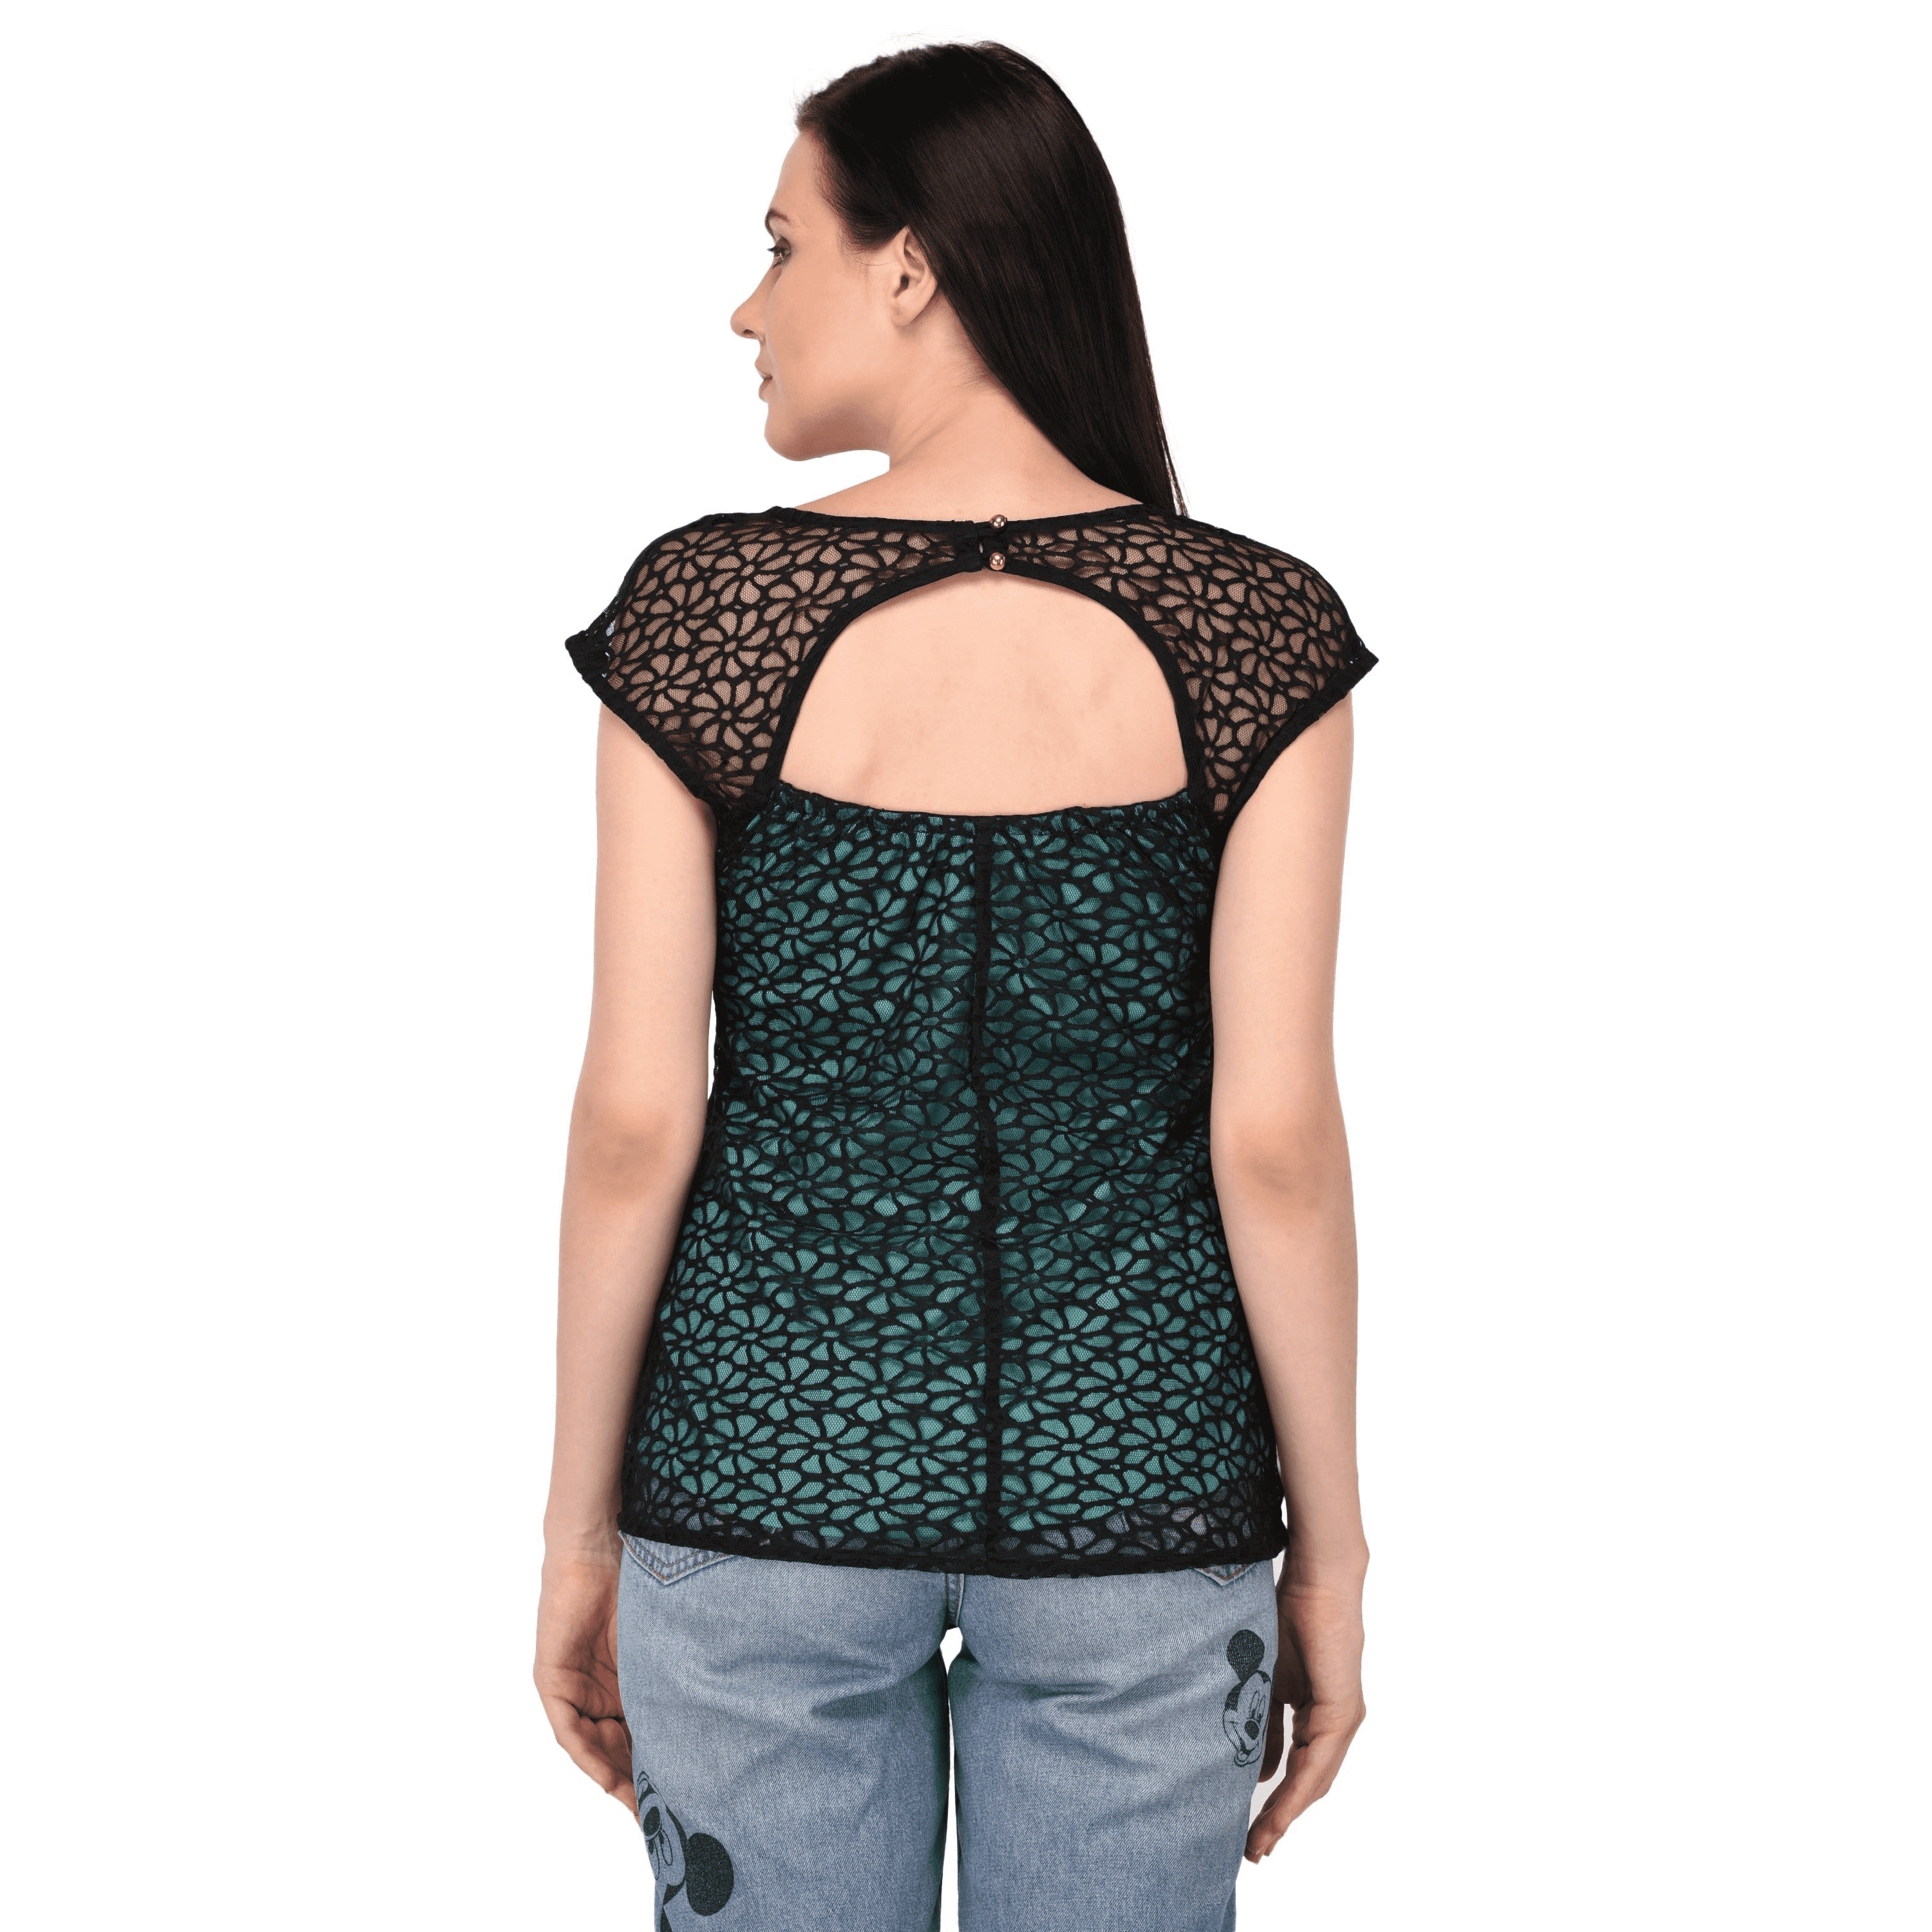 Lace Regular Fit Top Turquoise - NIXX Clothing